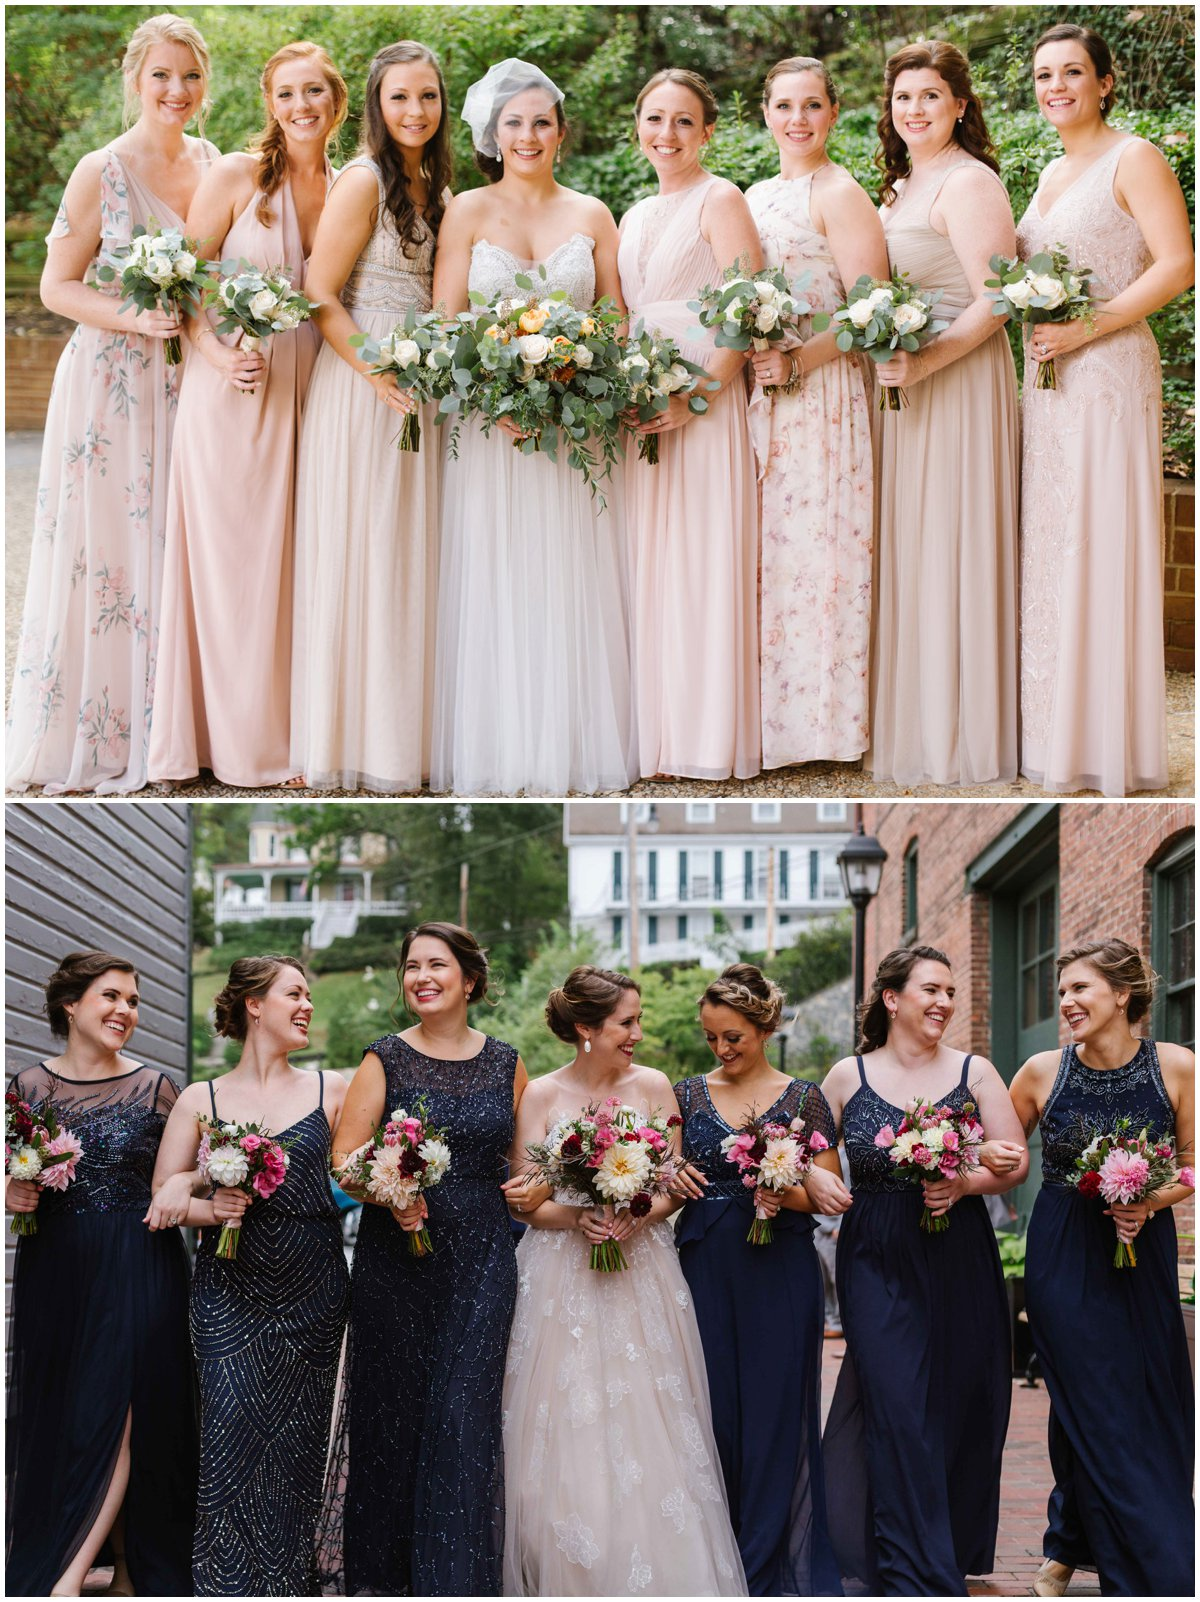 urban-row-photography-rosewood-farms-bridesmaids-dresses_0005.jpg